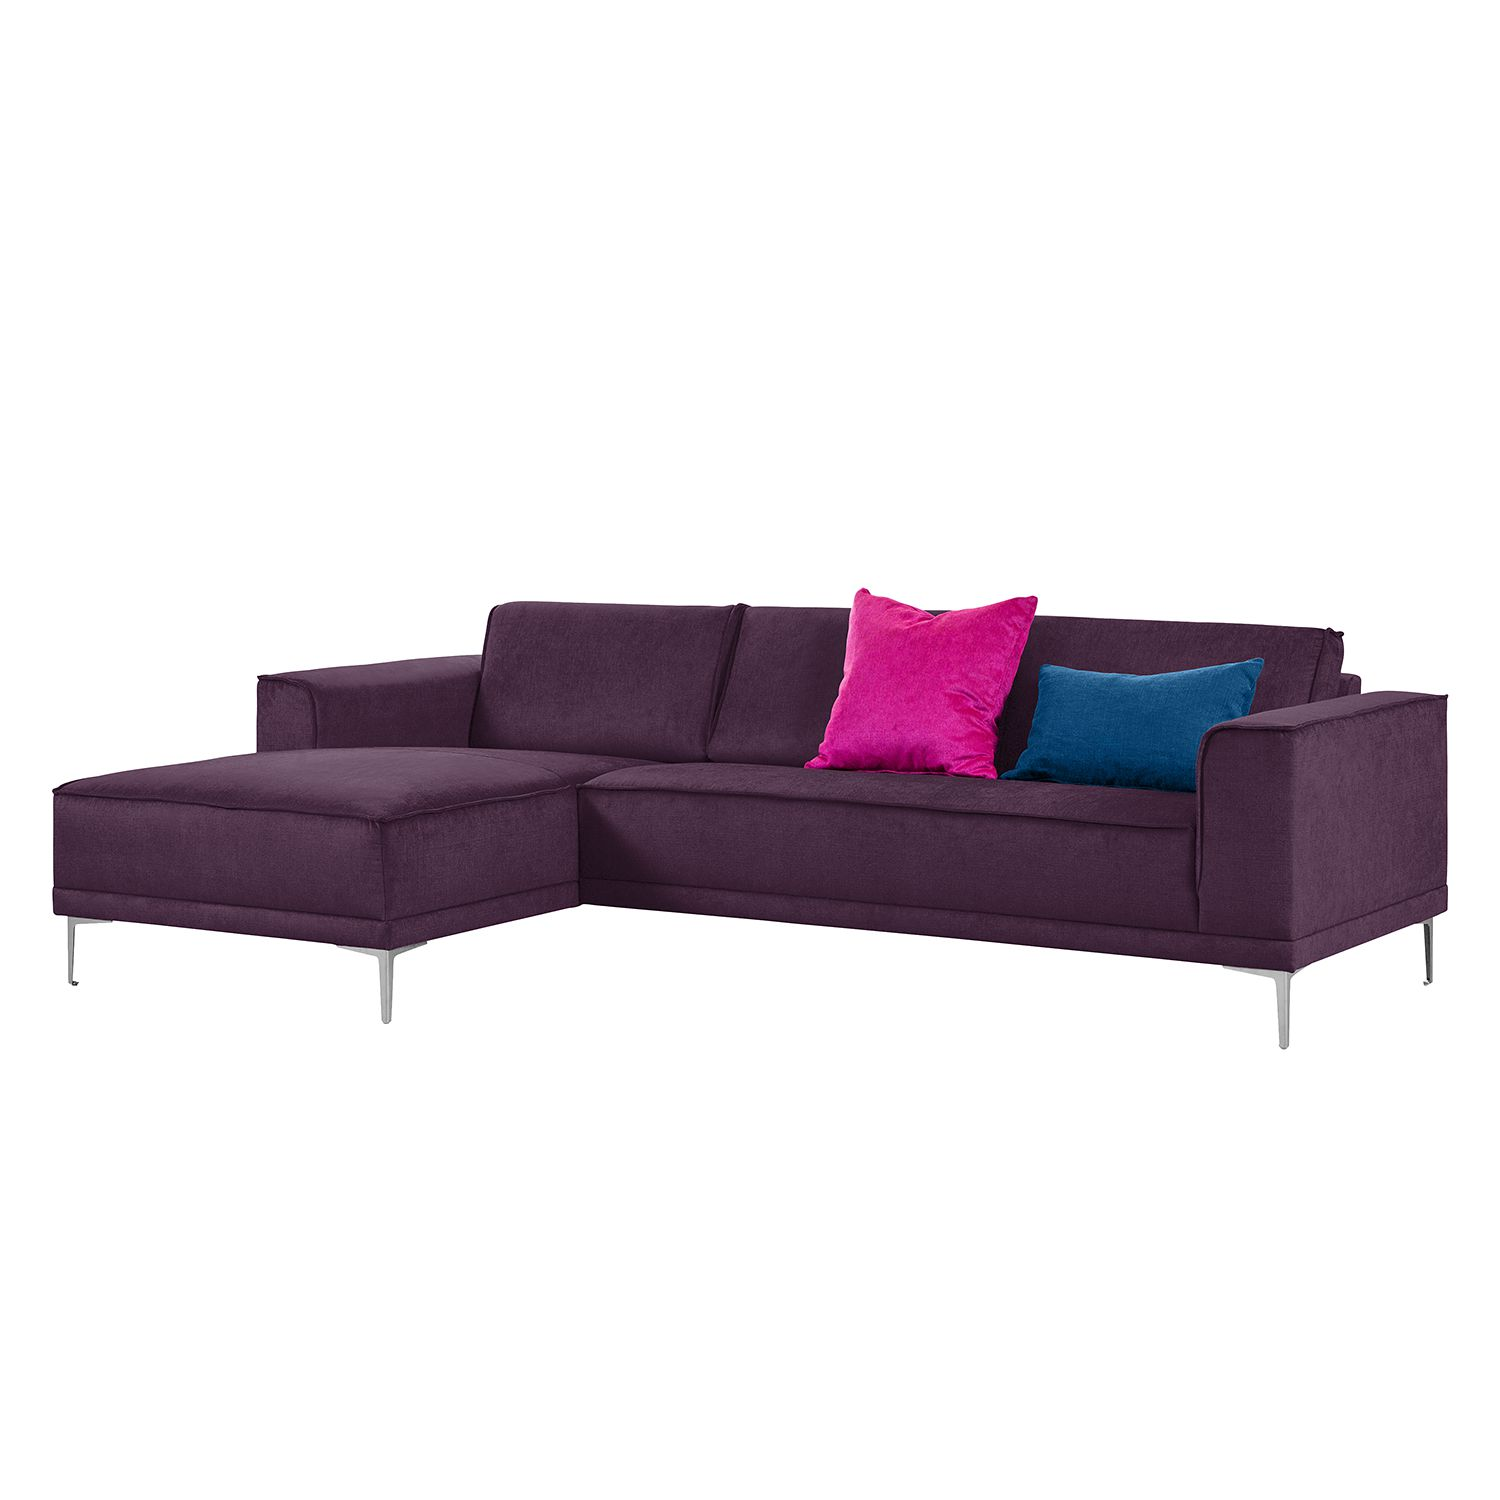 Ecksofa Grapefield - Webstoff - Longchair/Ottomane davorstehend links - Aubergine, Says Who